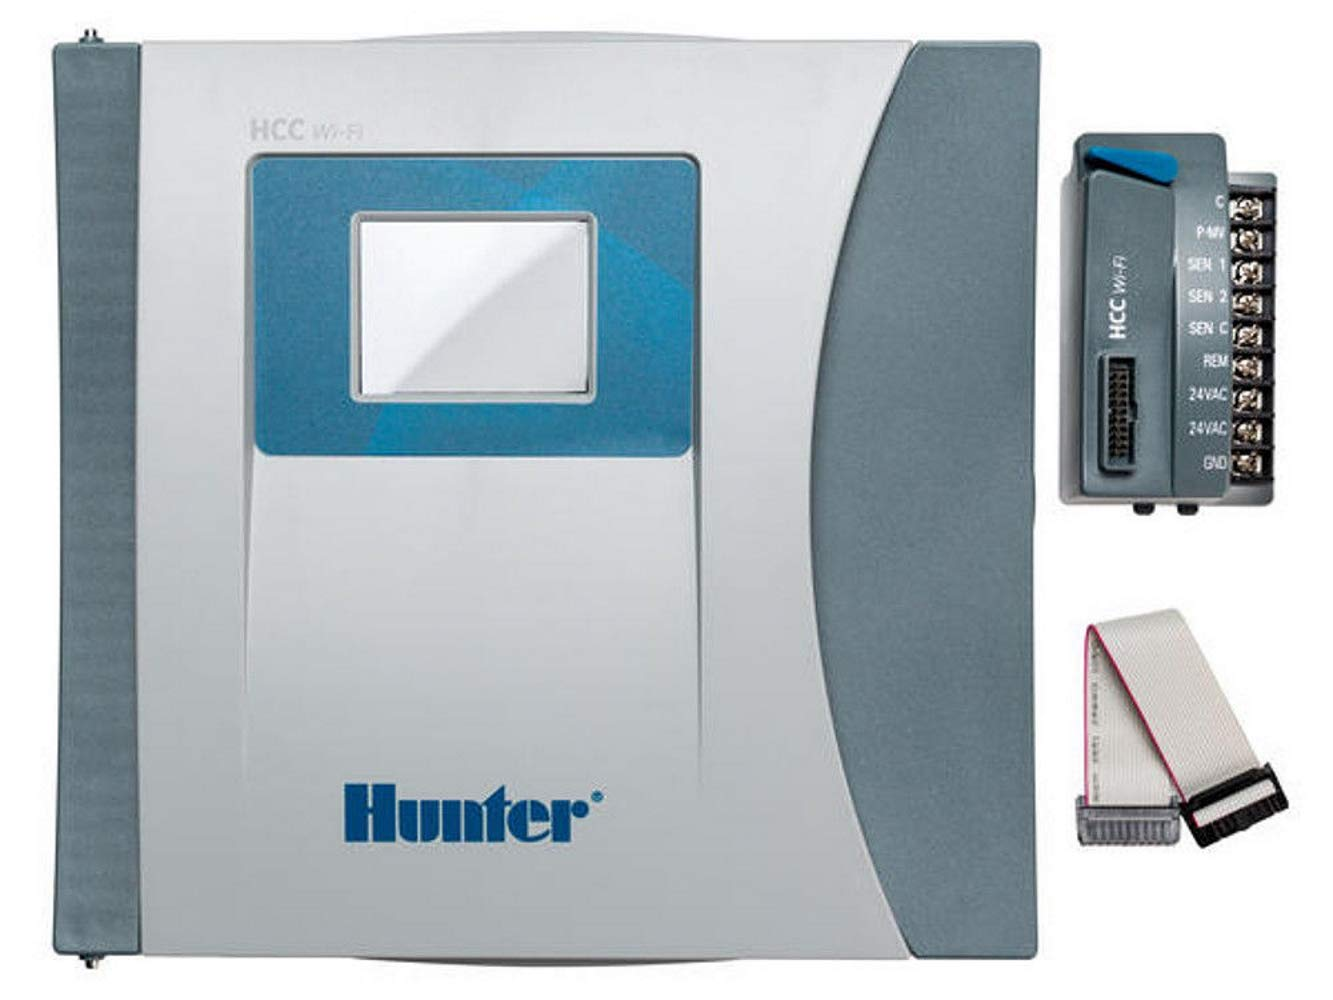 SPW Hunter Hydrawise HCC-800 HCC-FPUP Wi-Fi Facepack Upgrade